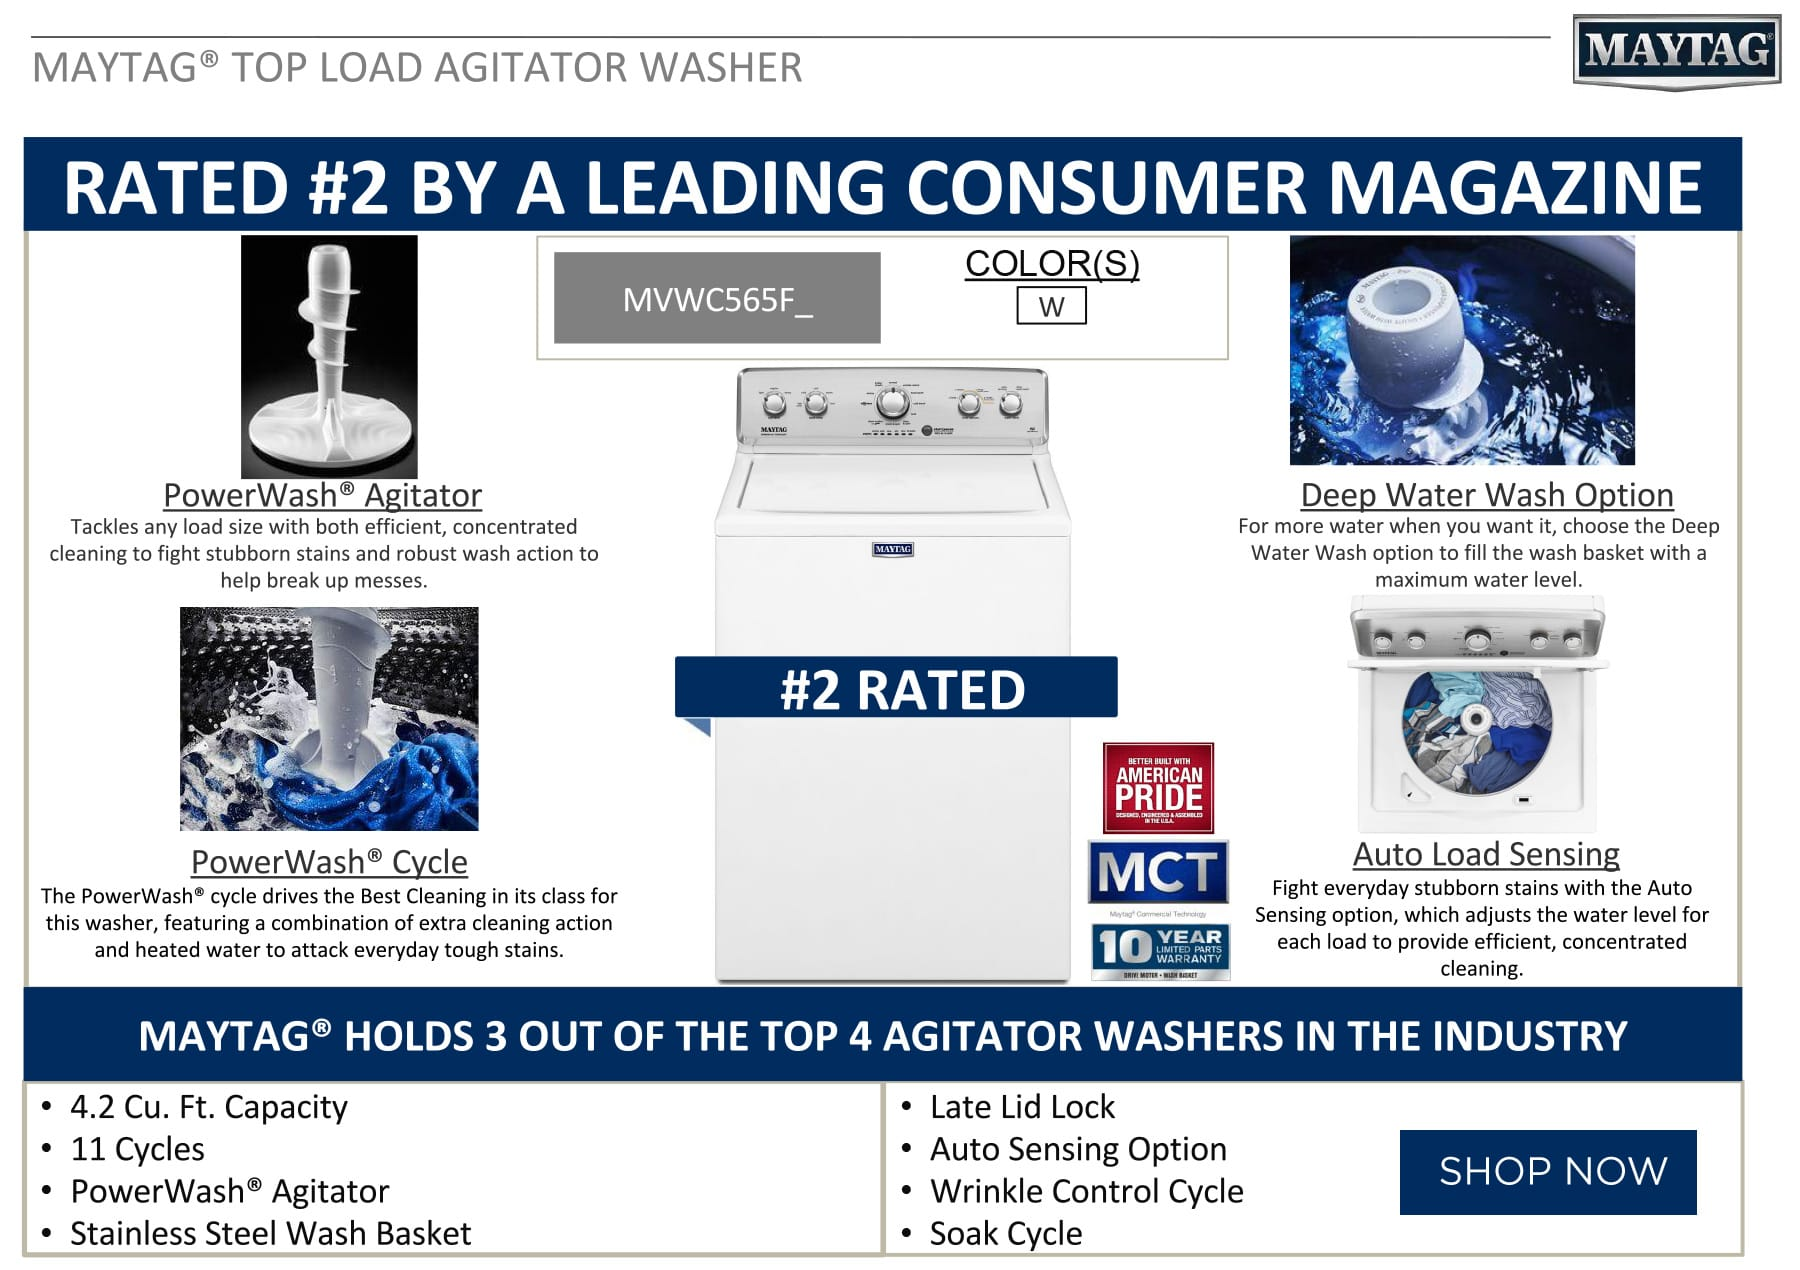 Maytag Washer Rated #2